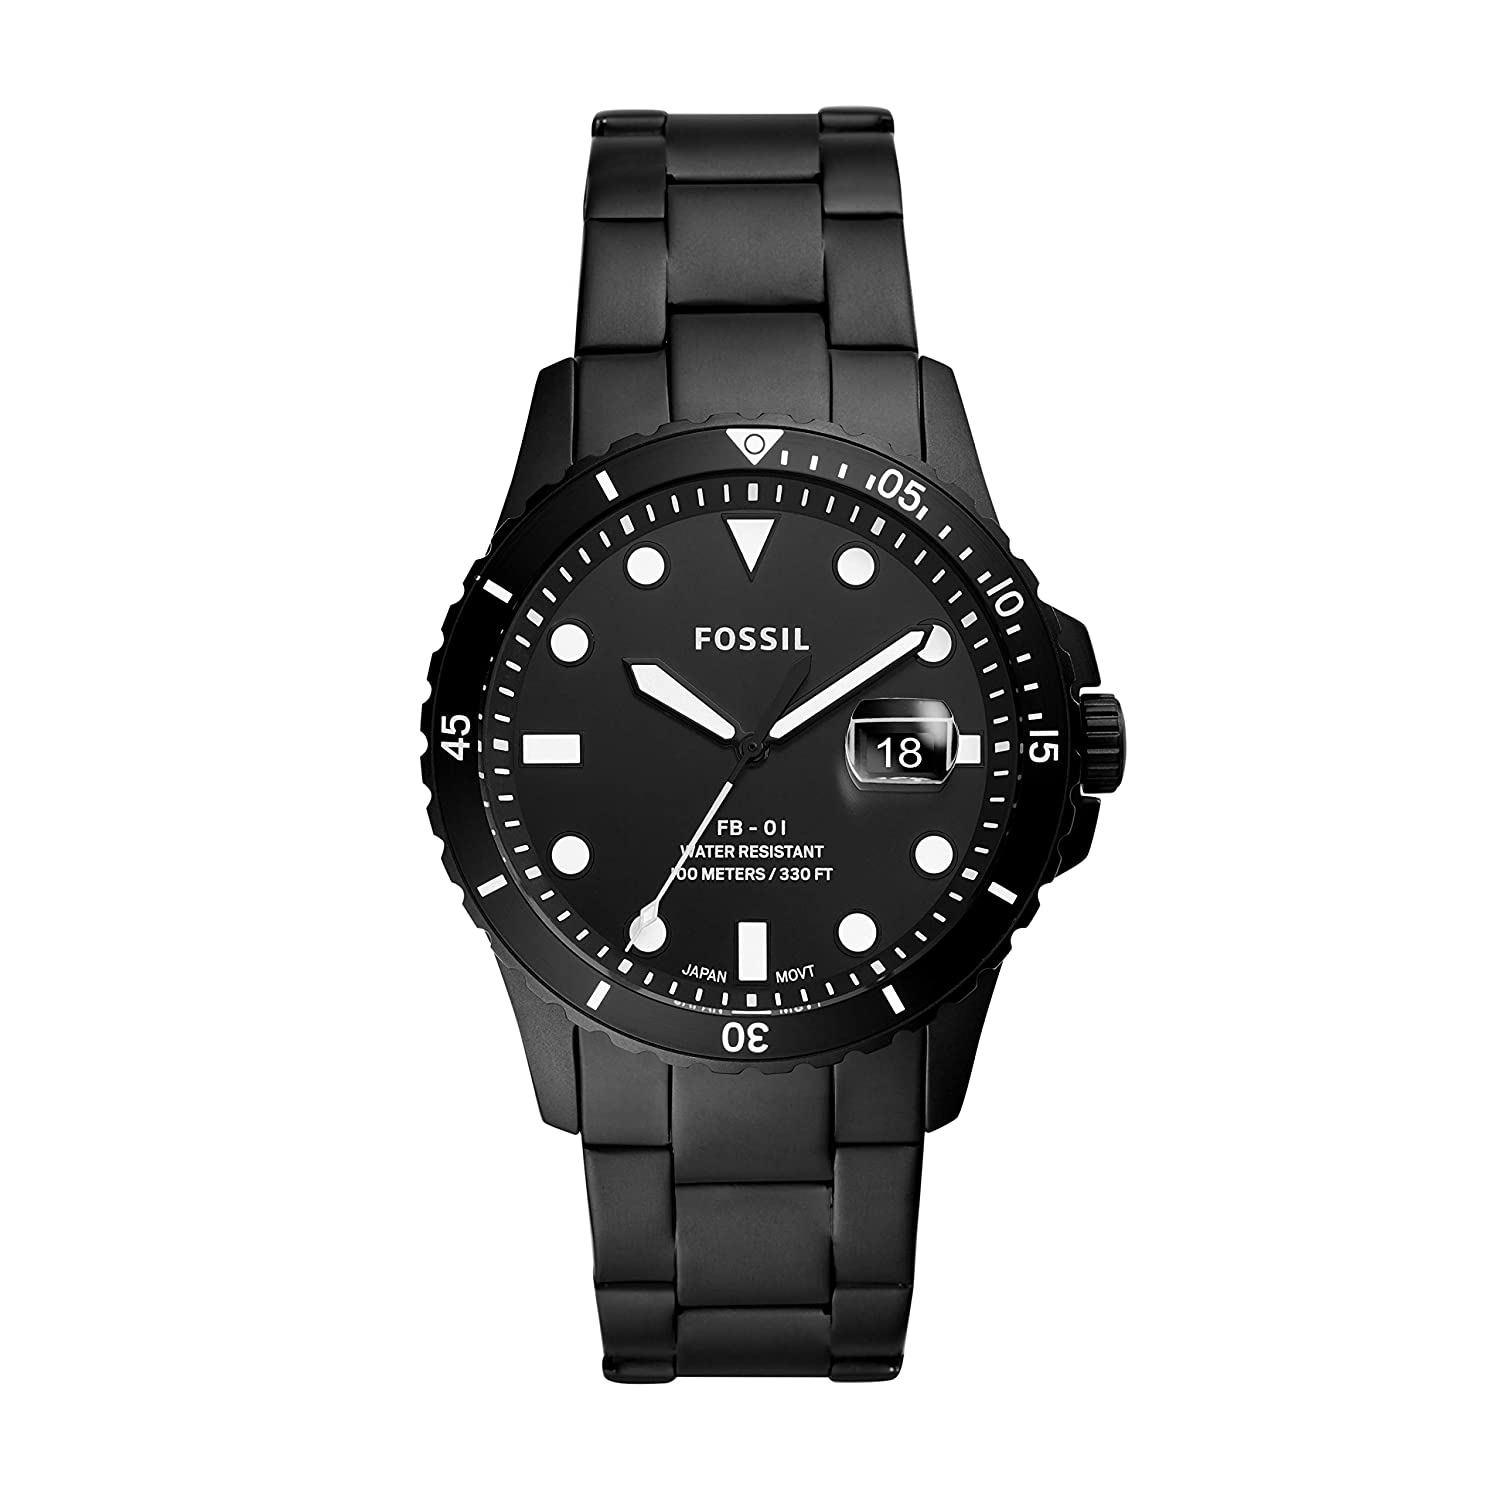 Fossil - Top 10 Luxury Watch Brands in India